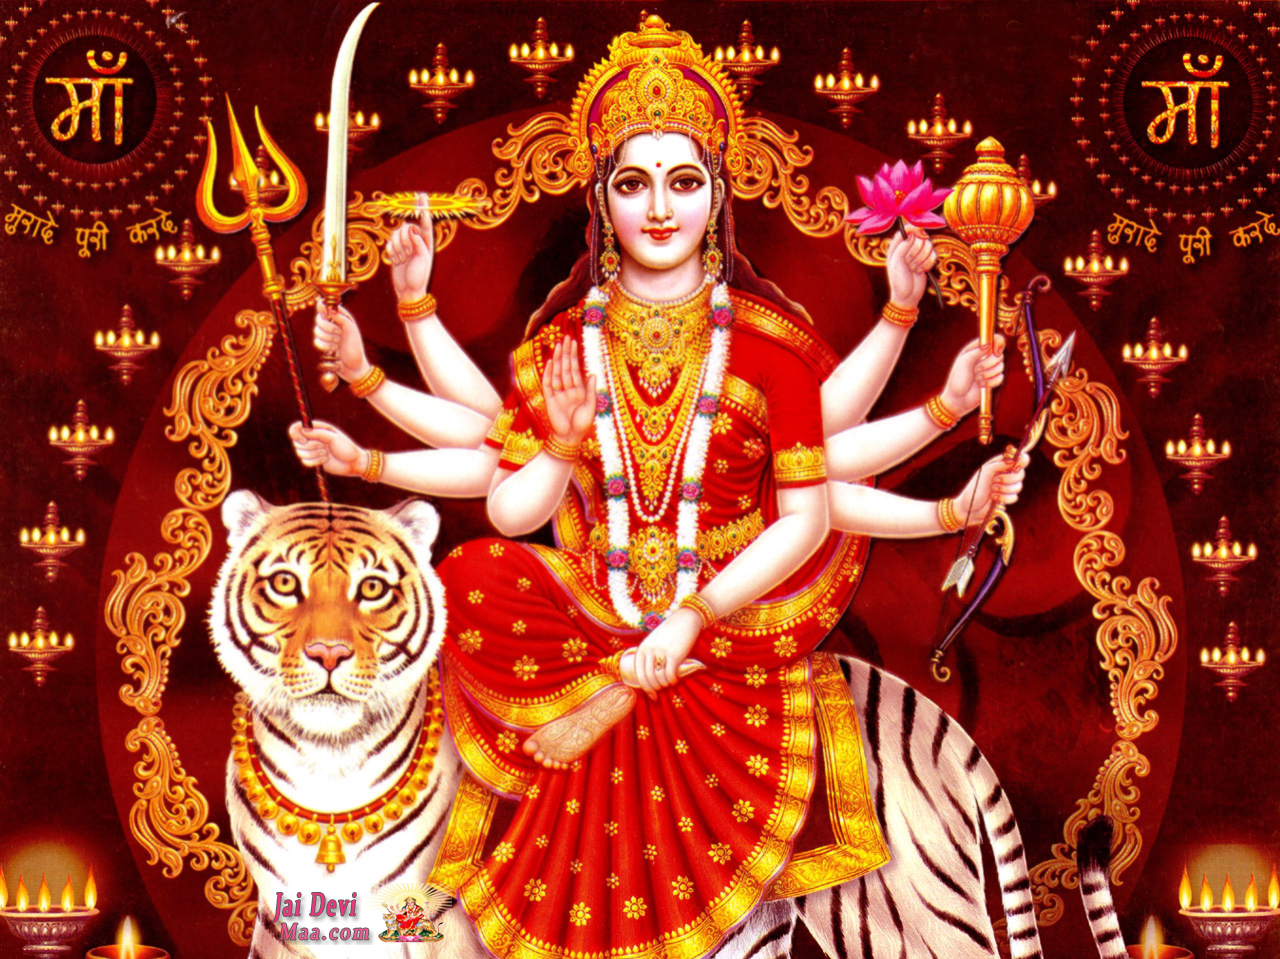 Wallpaper download durga maa - Maa Durga Pictures Wallpapers Images For Dussehra Free Download News